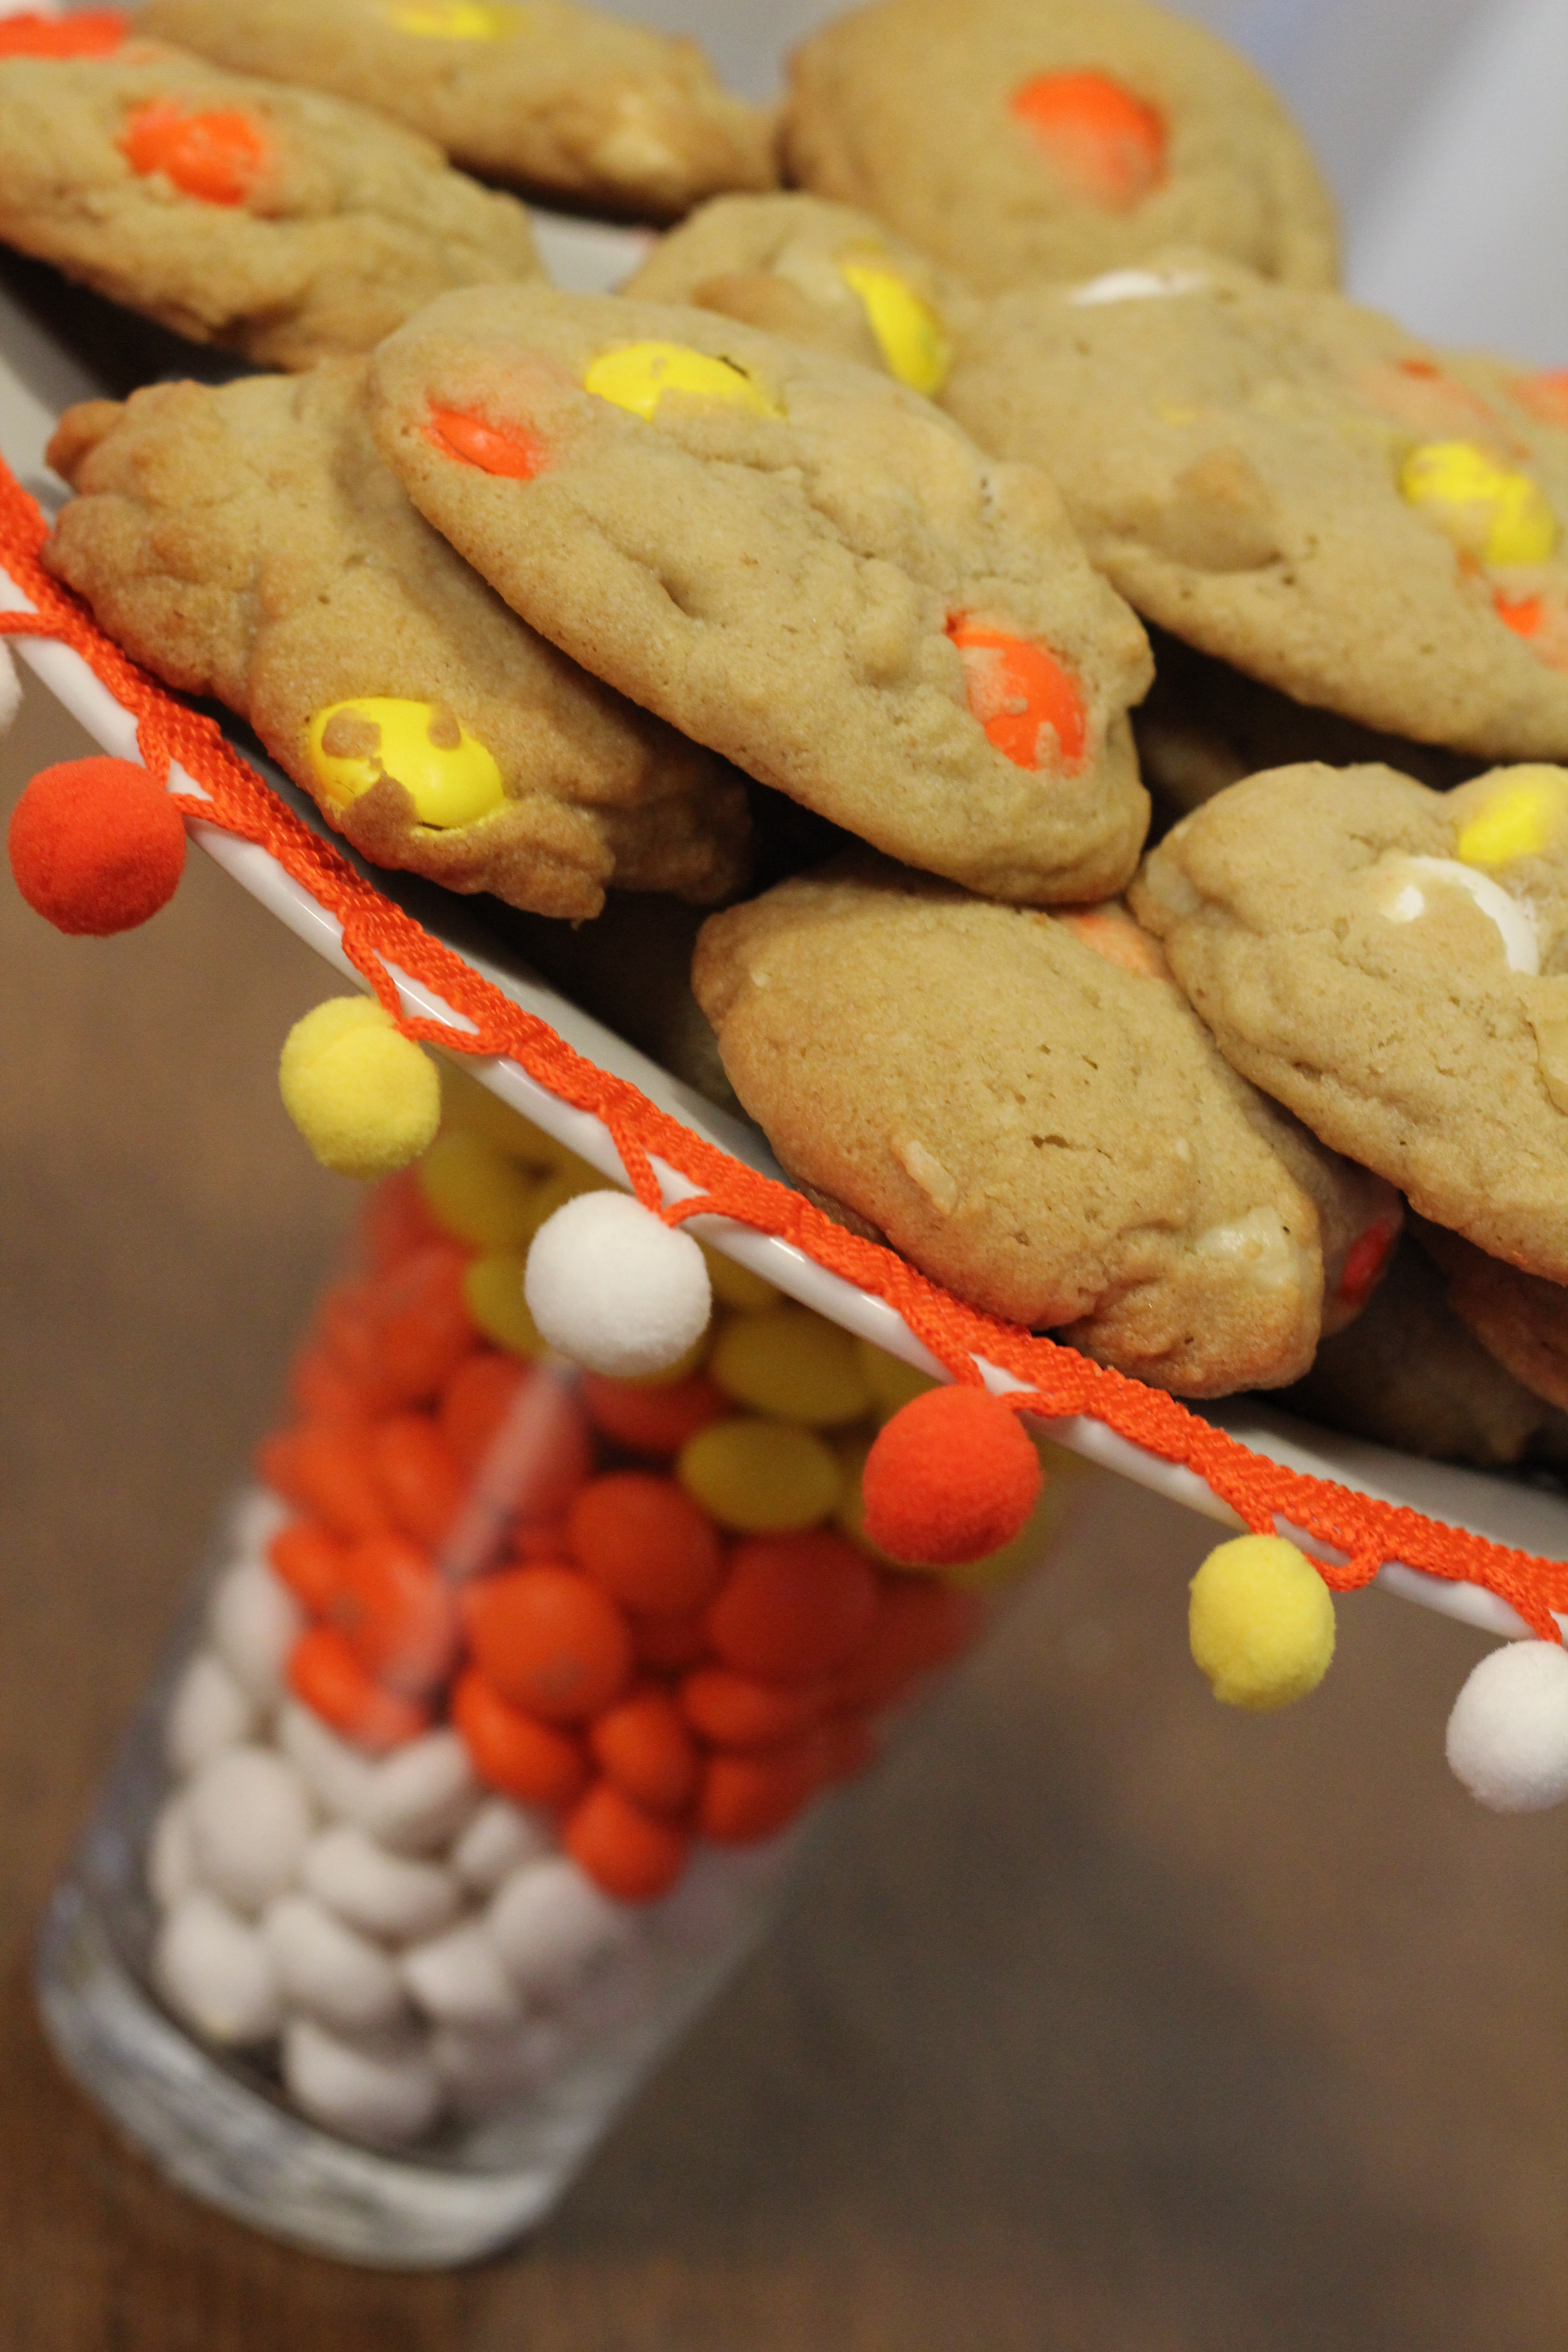 M&M's candy corn white chocolate macadamia nut cookies